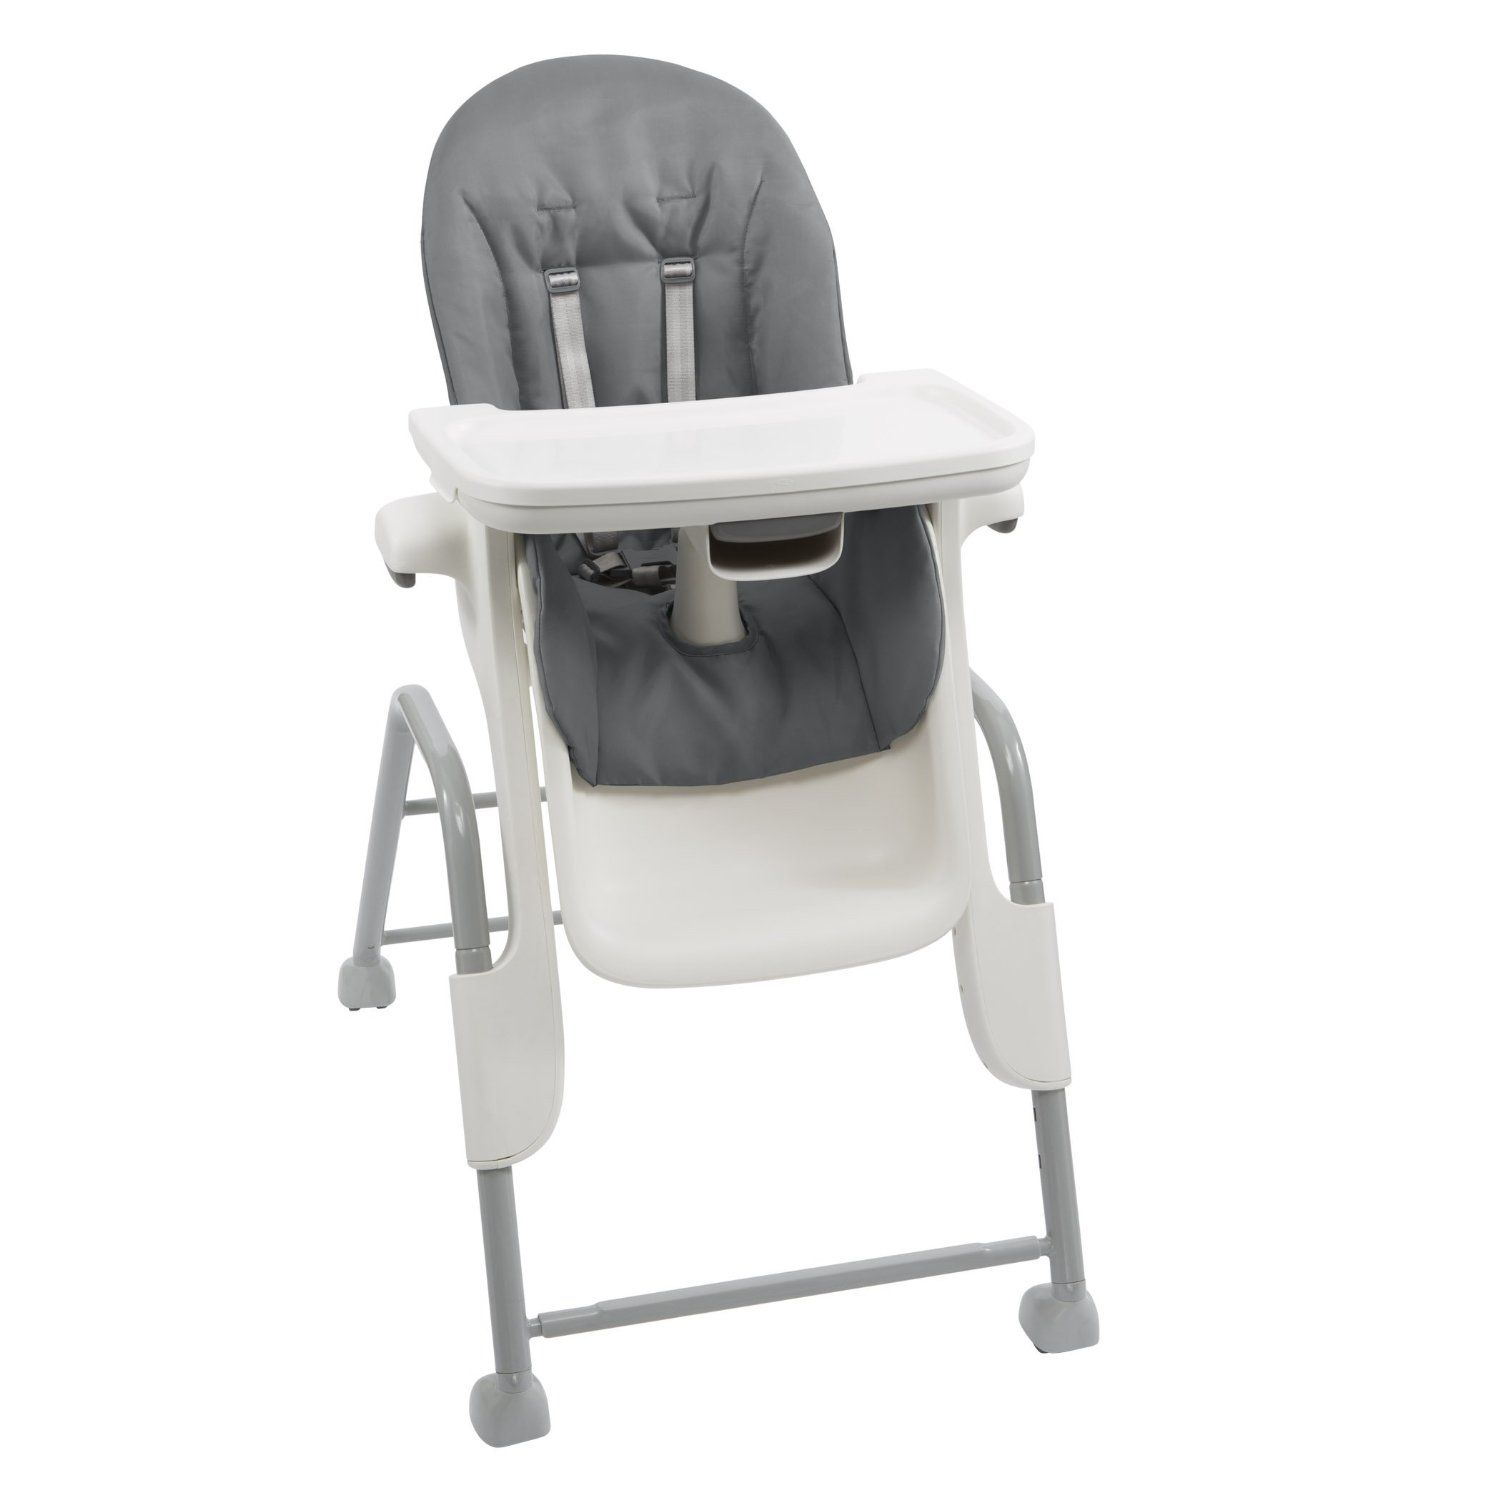 Review: OXO Seedling High Chair